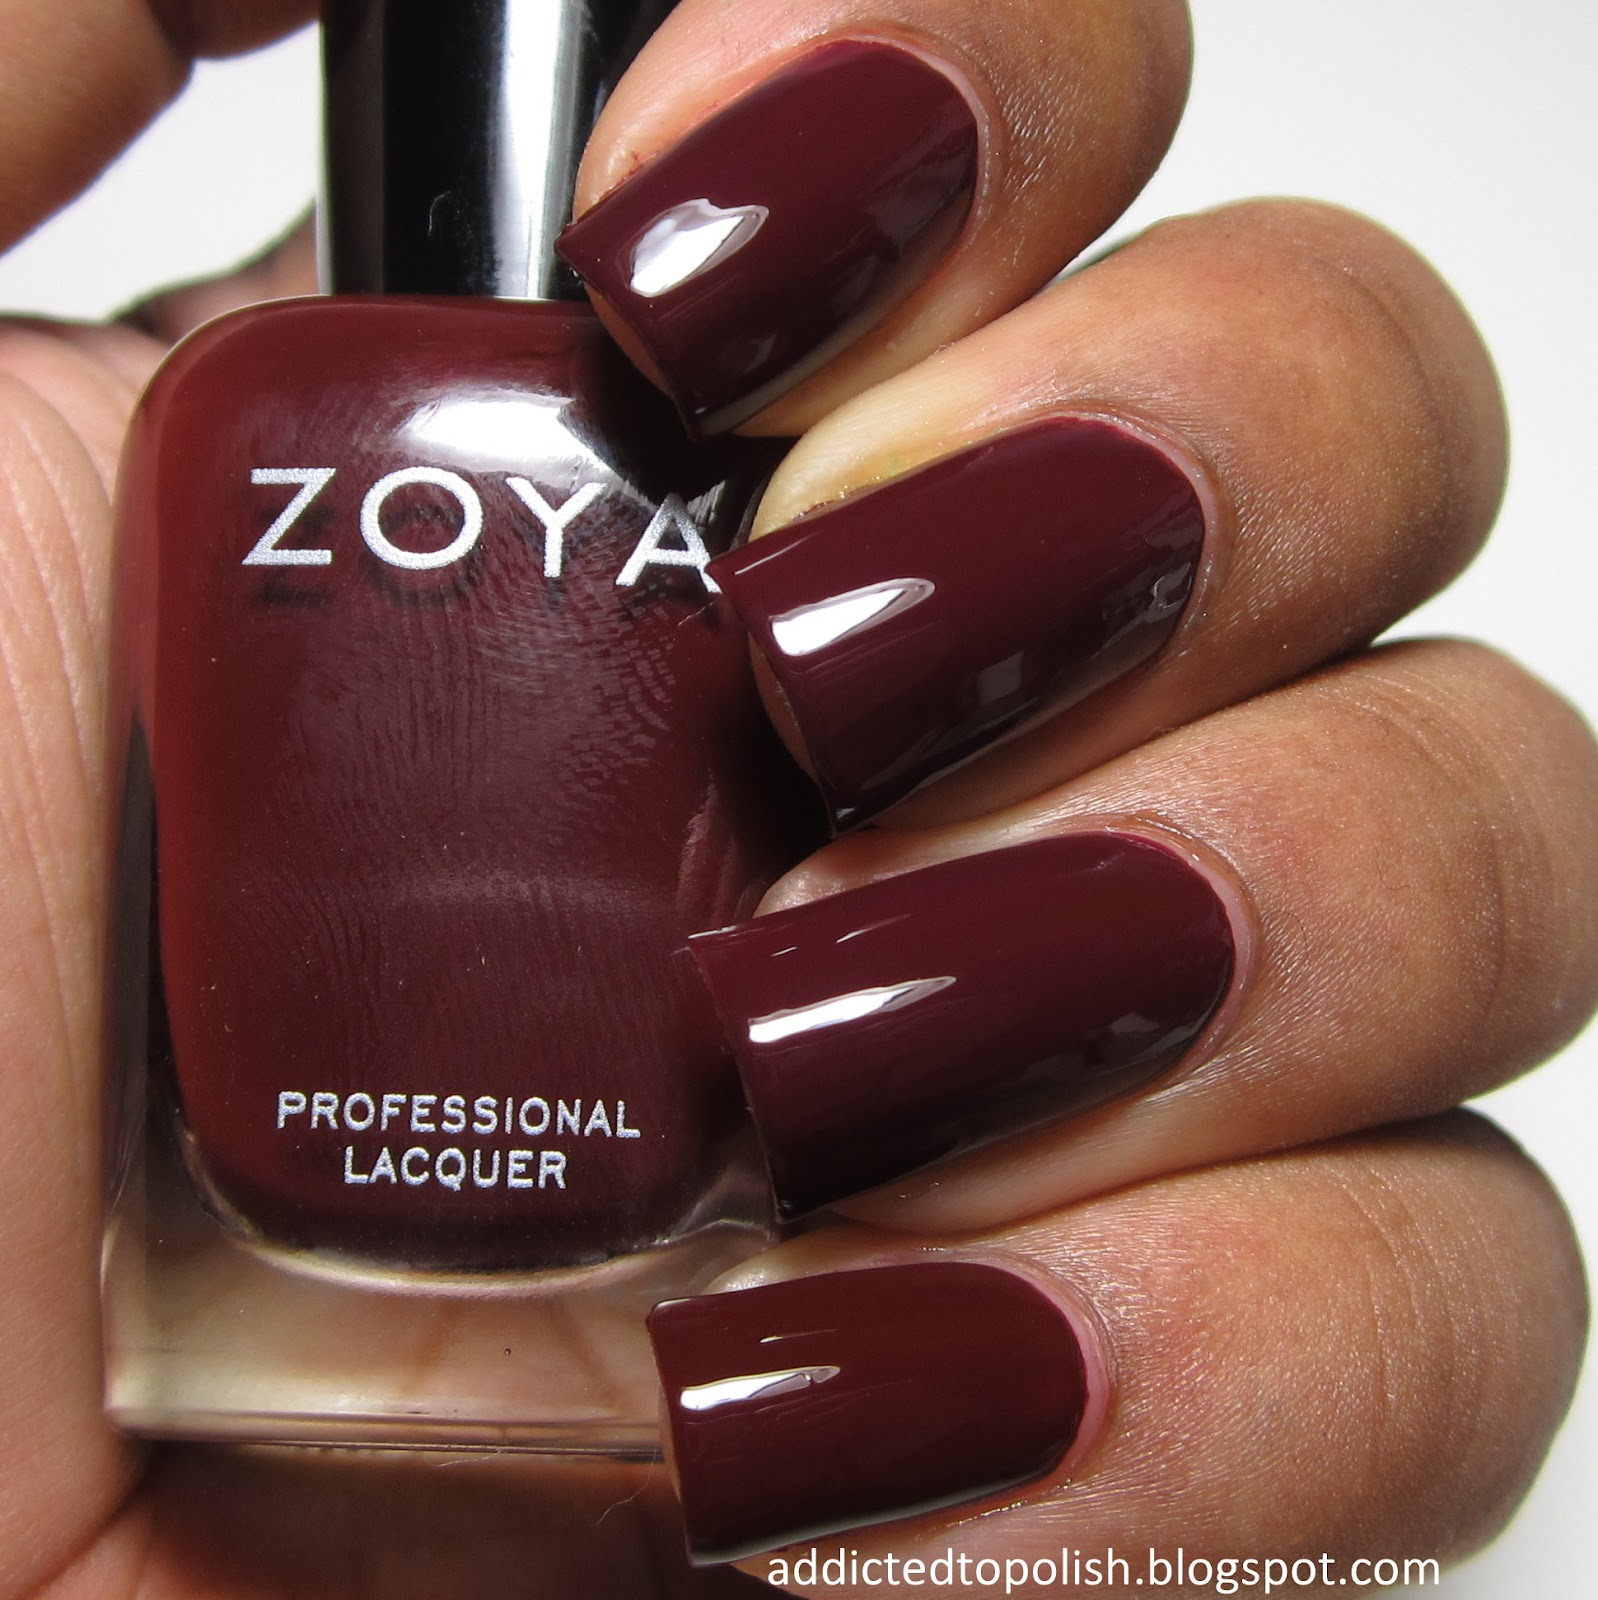 addicted to polish zoya entice collection for fall 2014 swatches and review. Black Bedroom Furniture Sets. Home Design Ideas